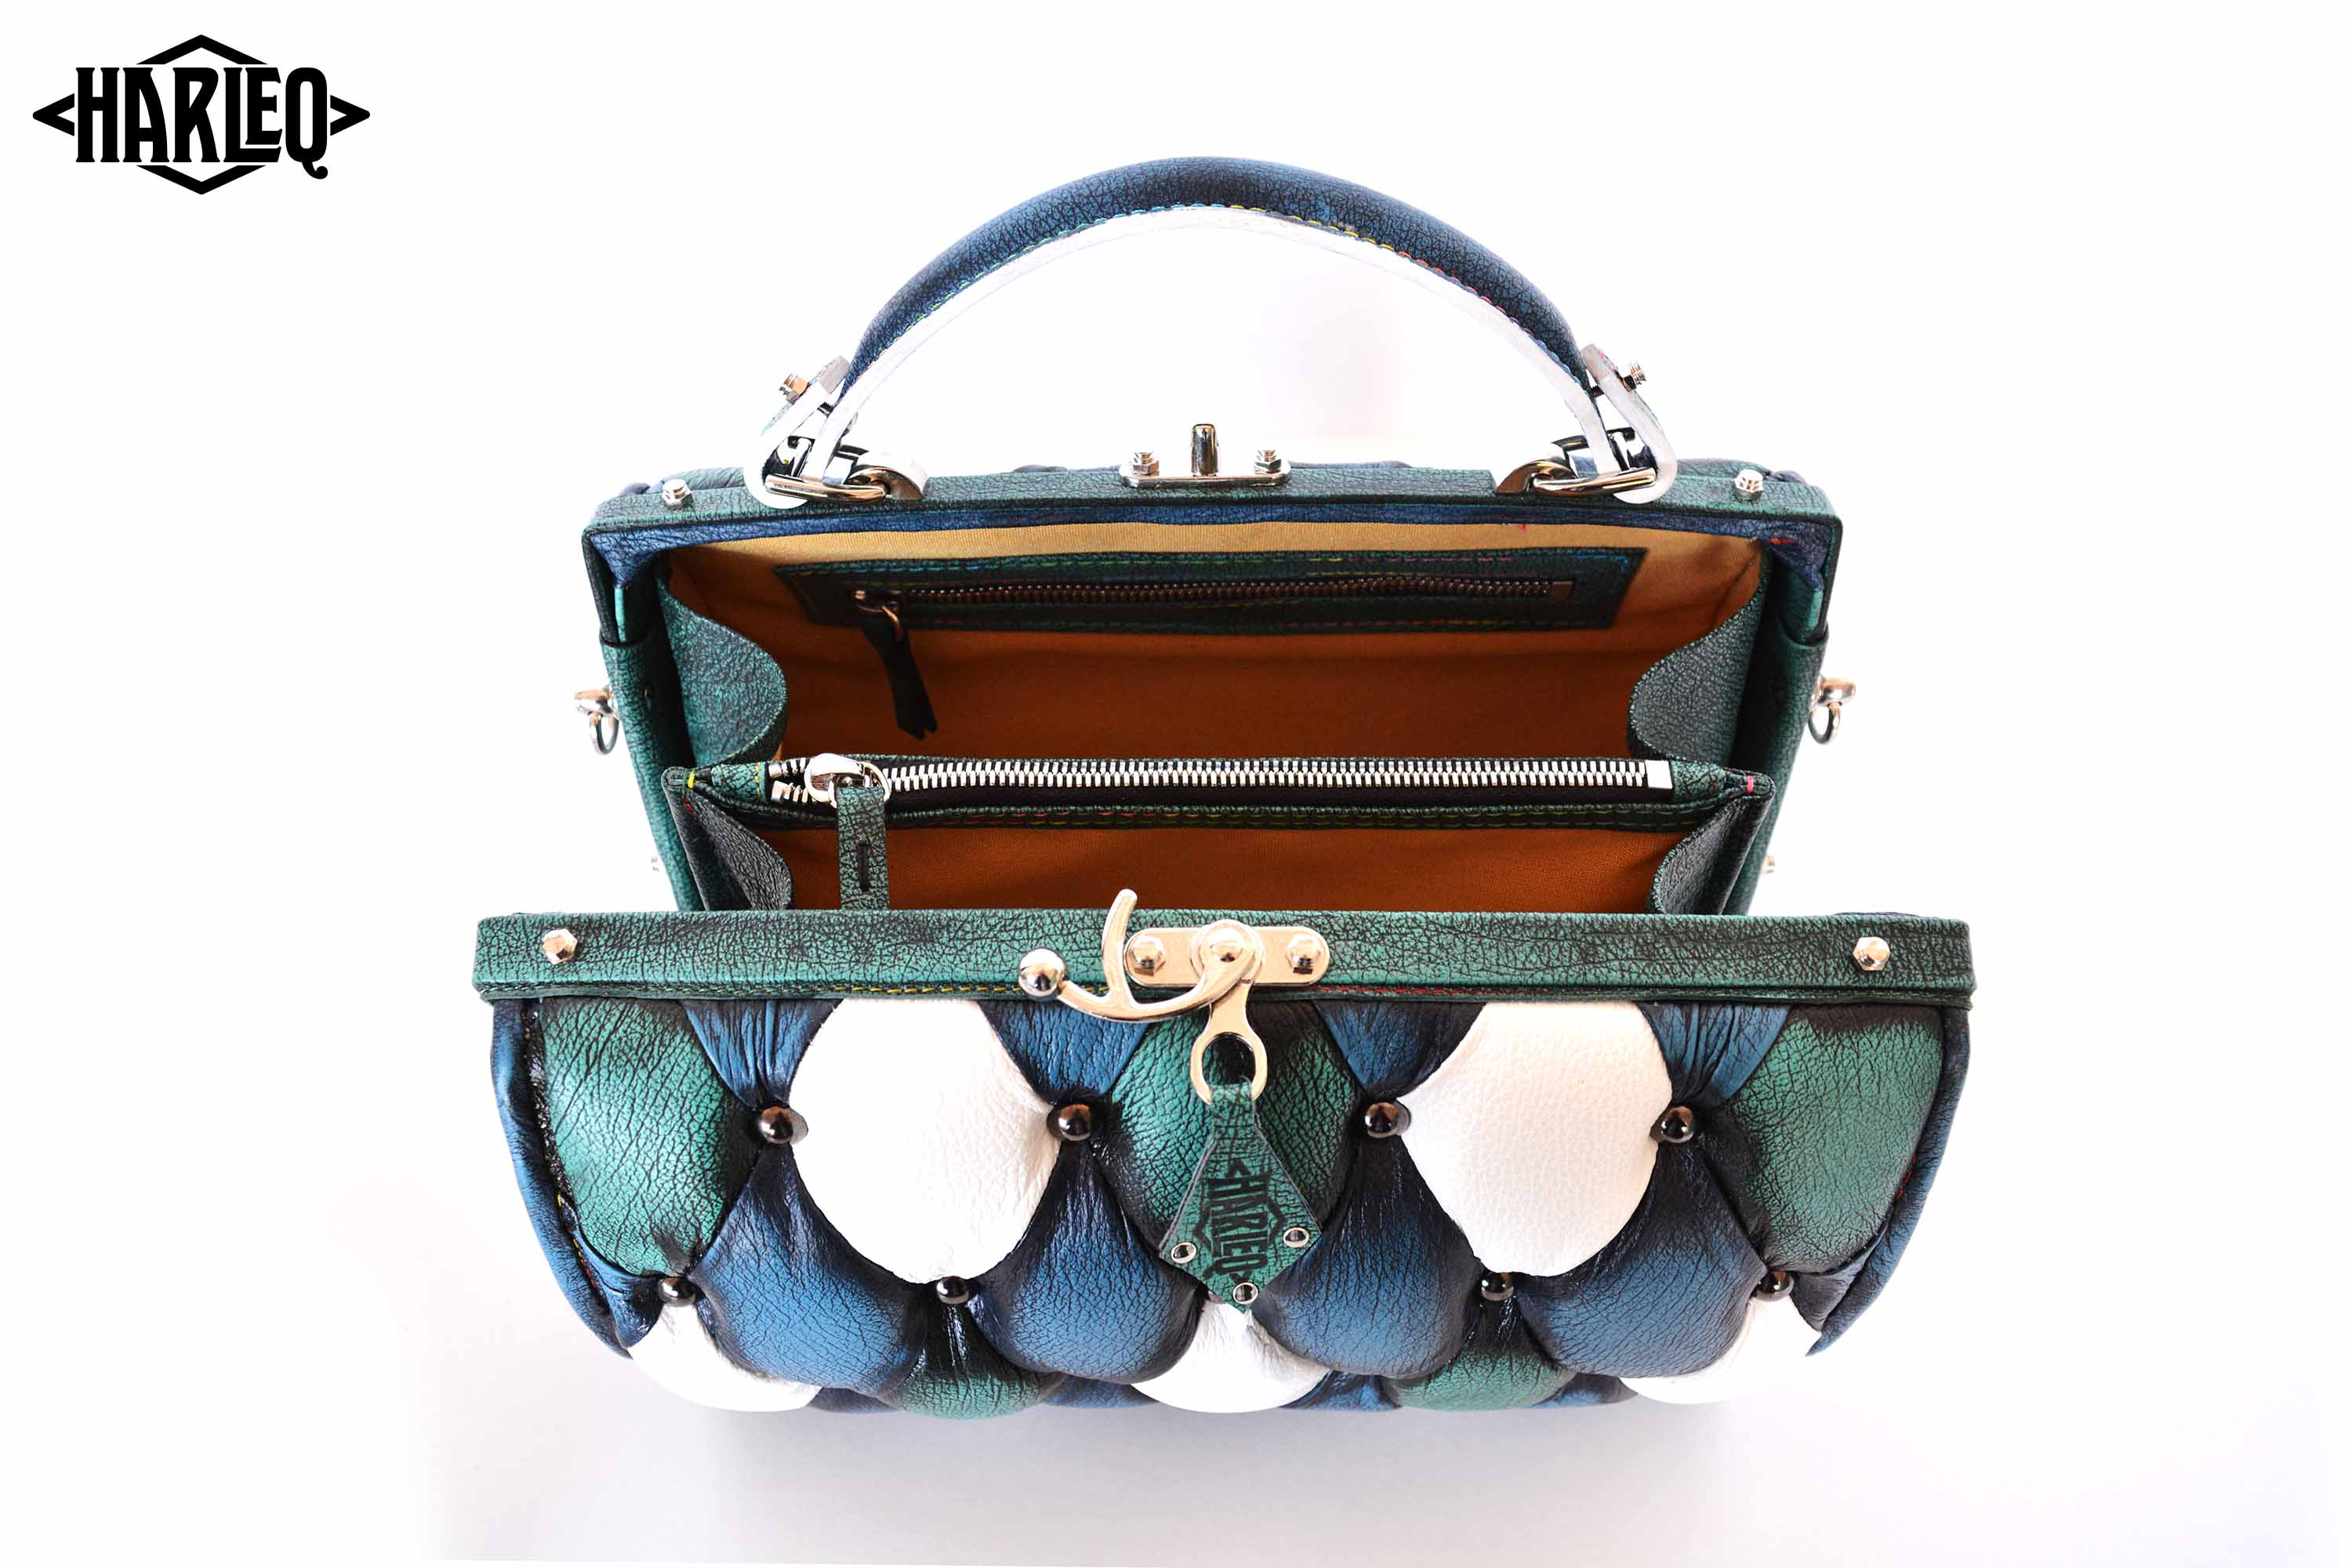 harleq-trunk-turquoise-leather-open